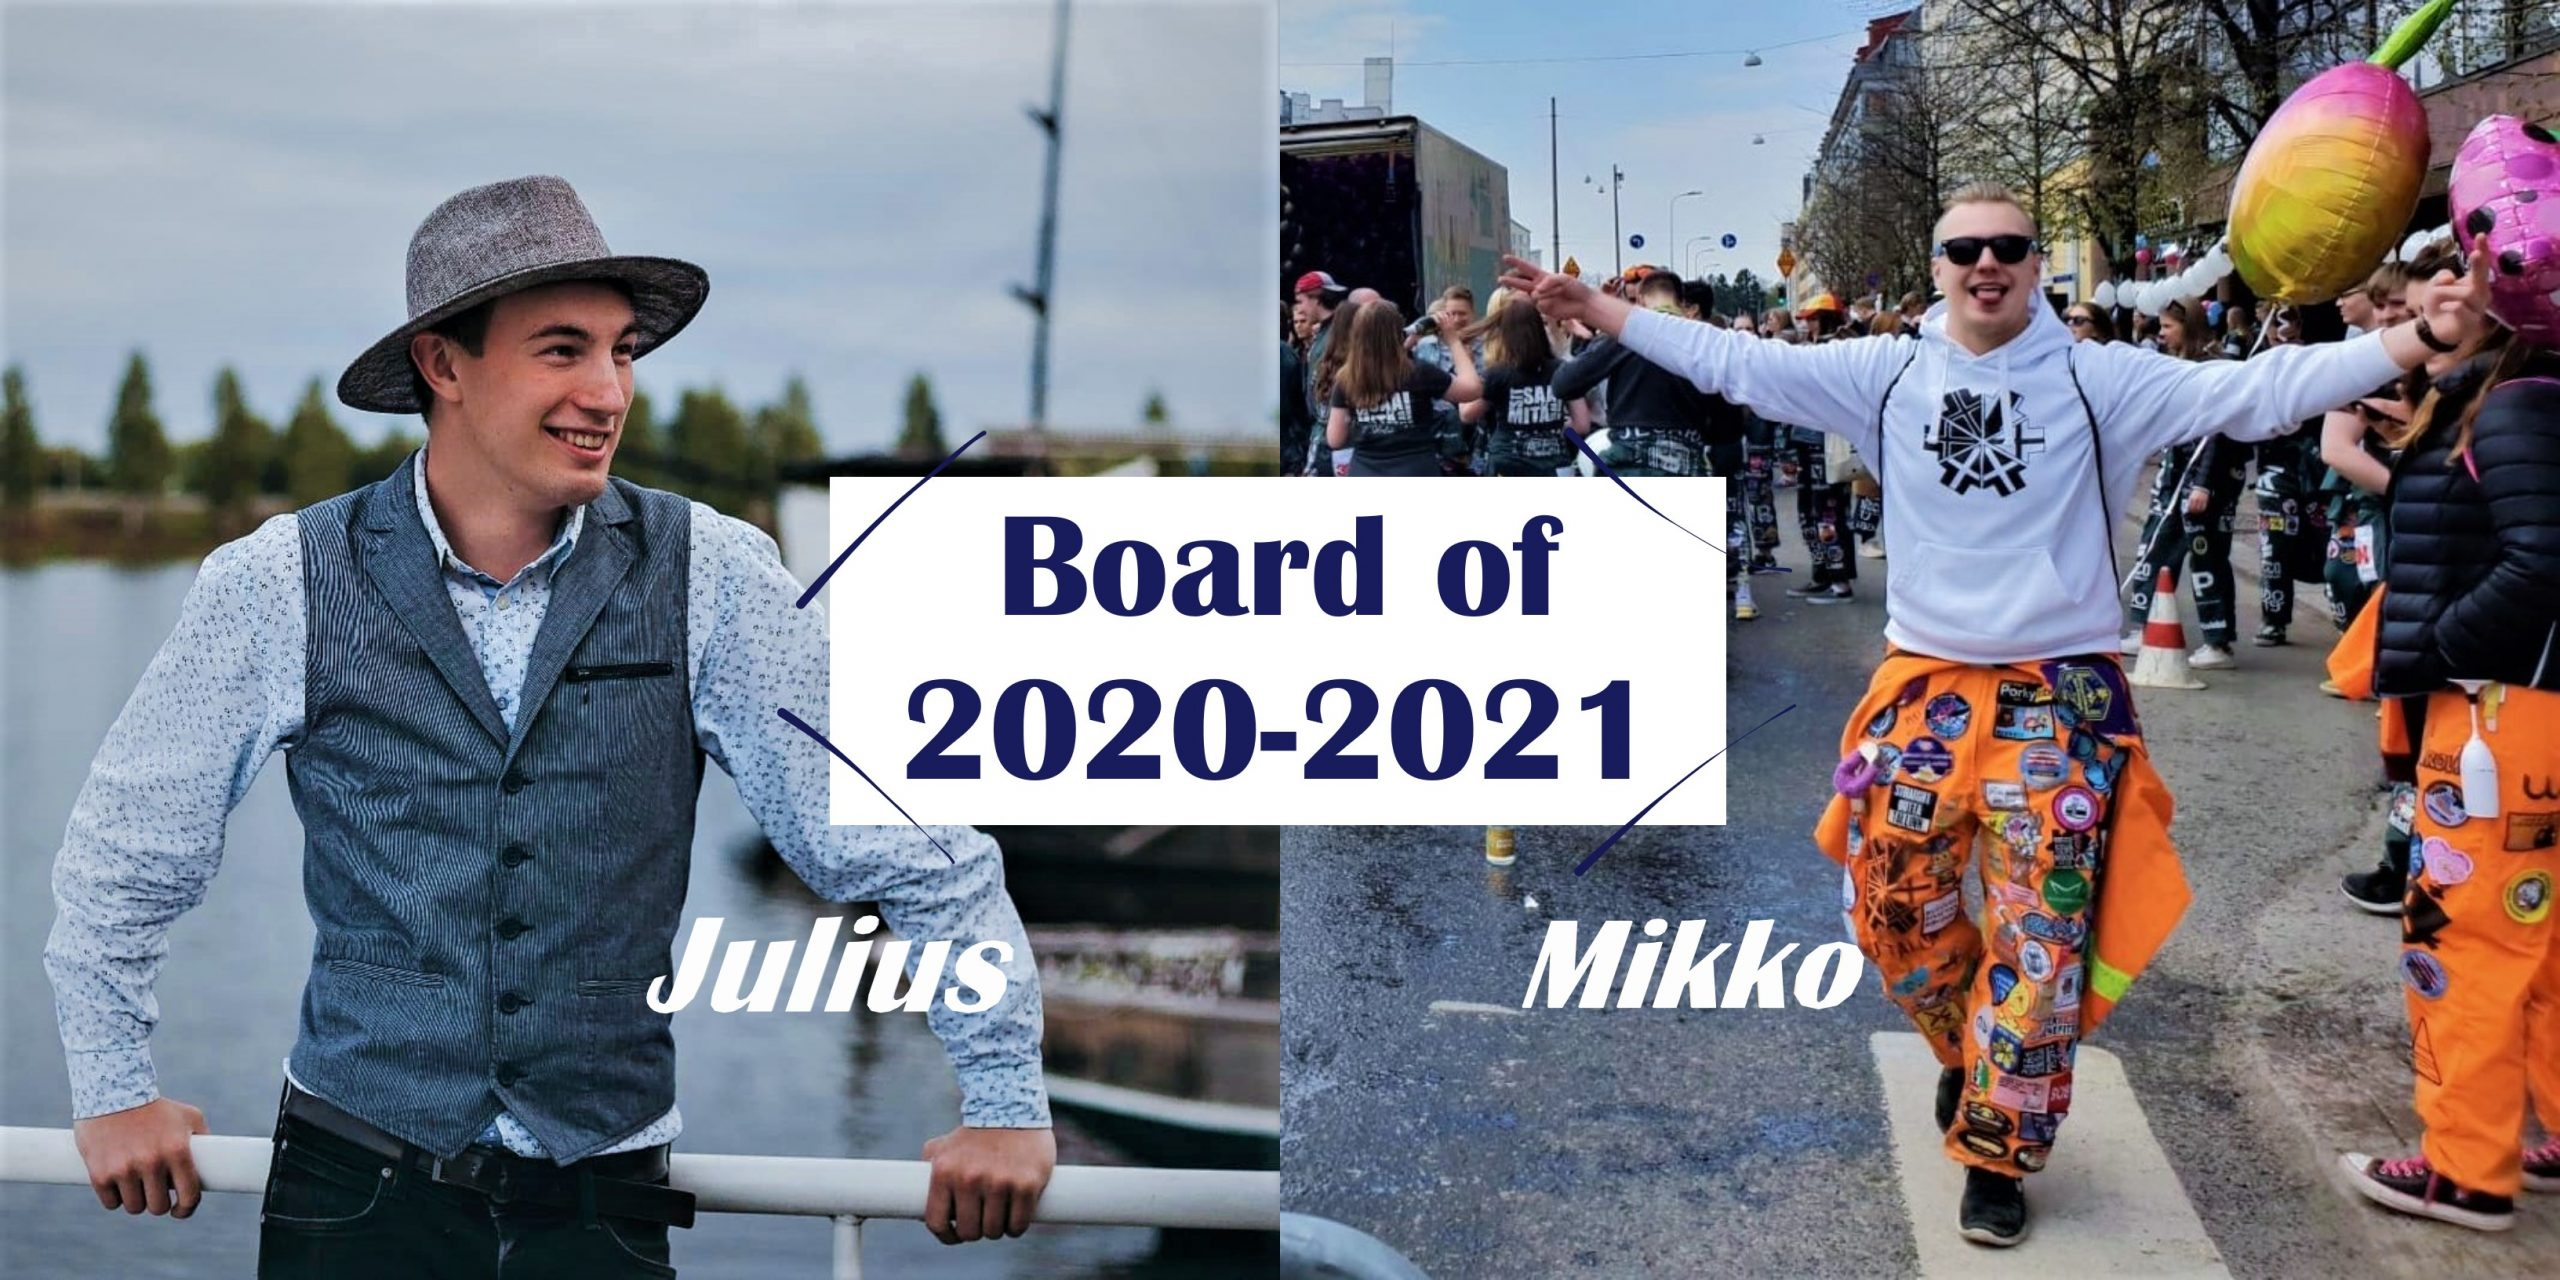 All Aboard: Board of 2020-2021 (Part 3/3)